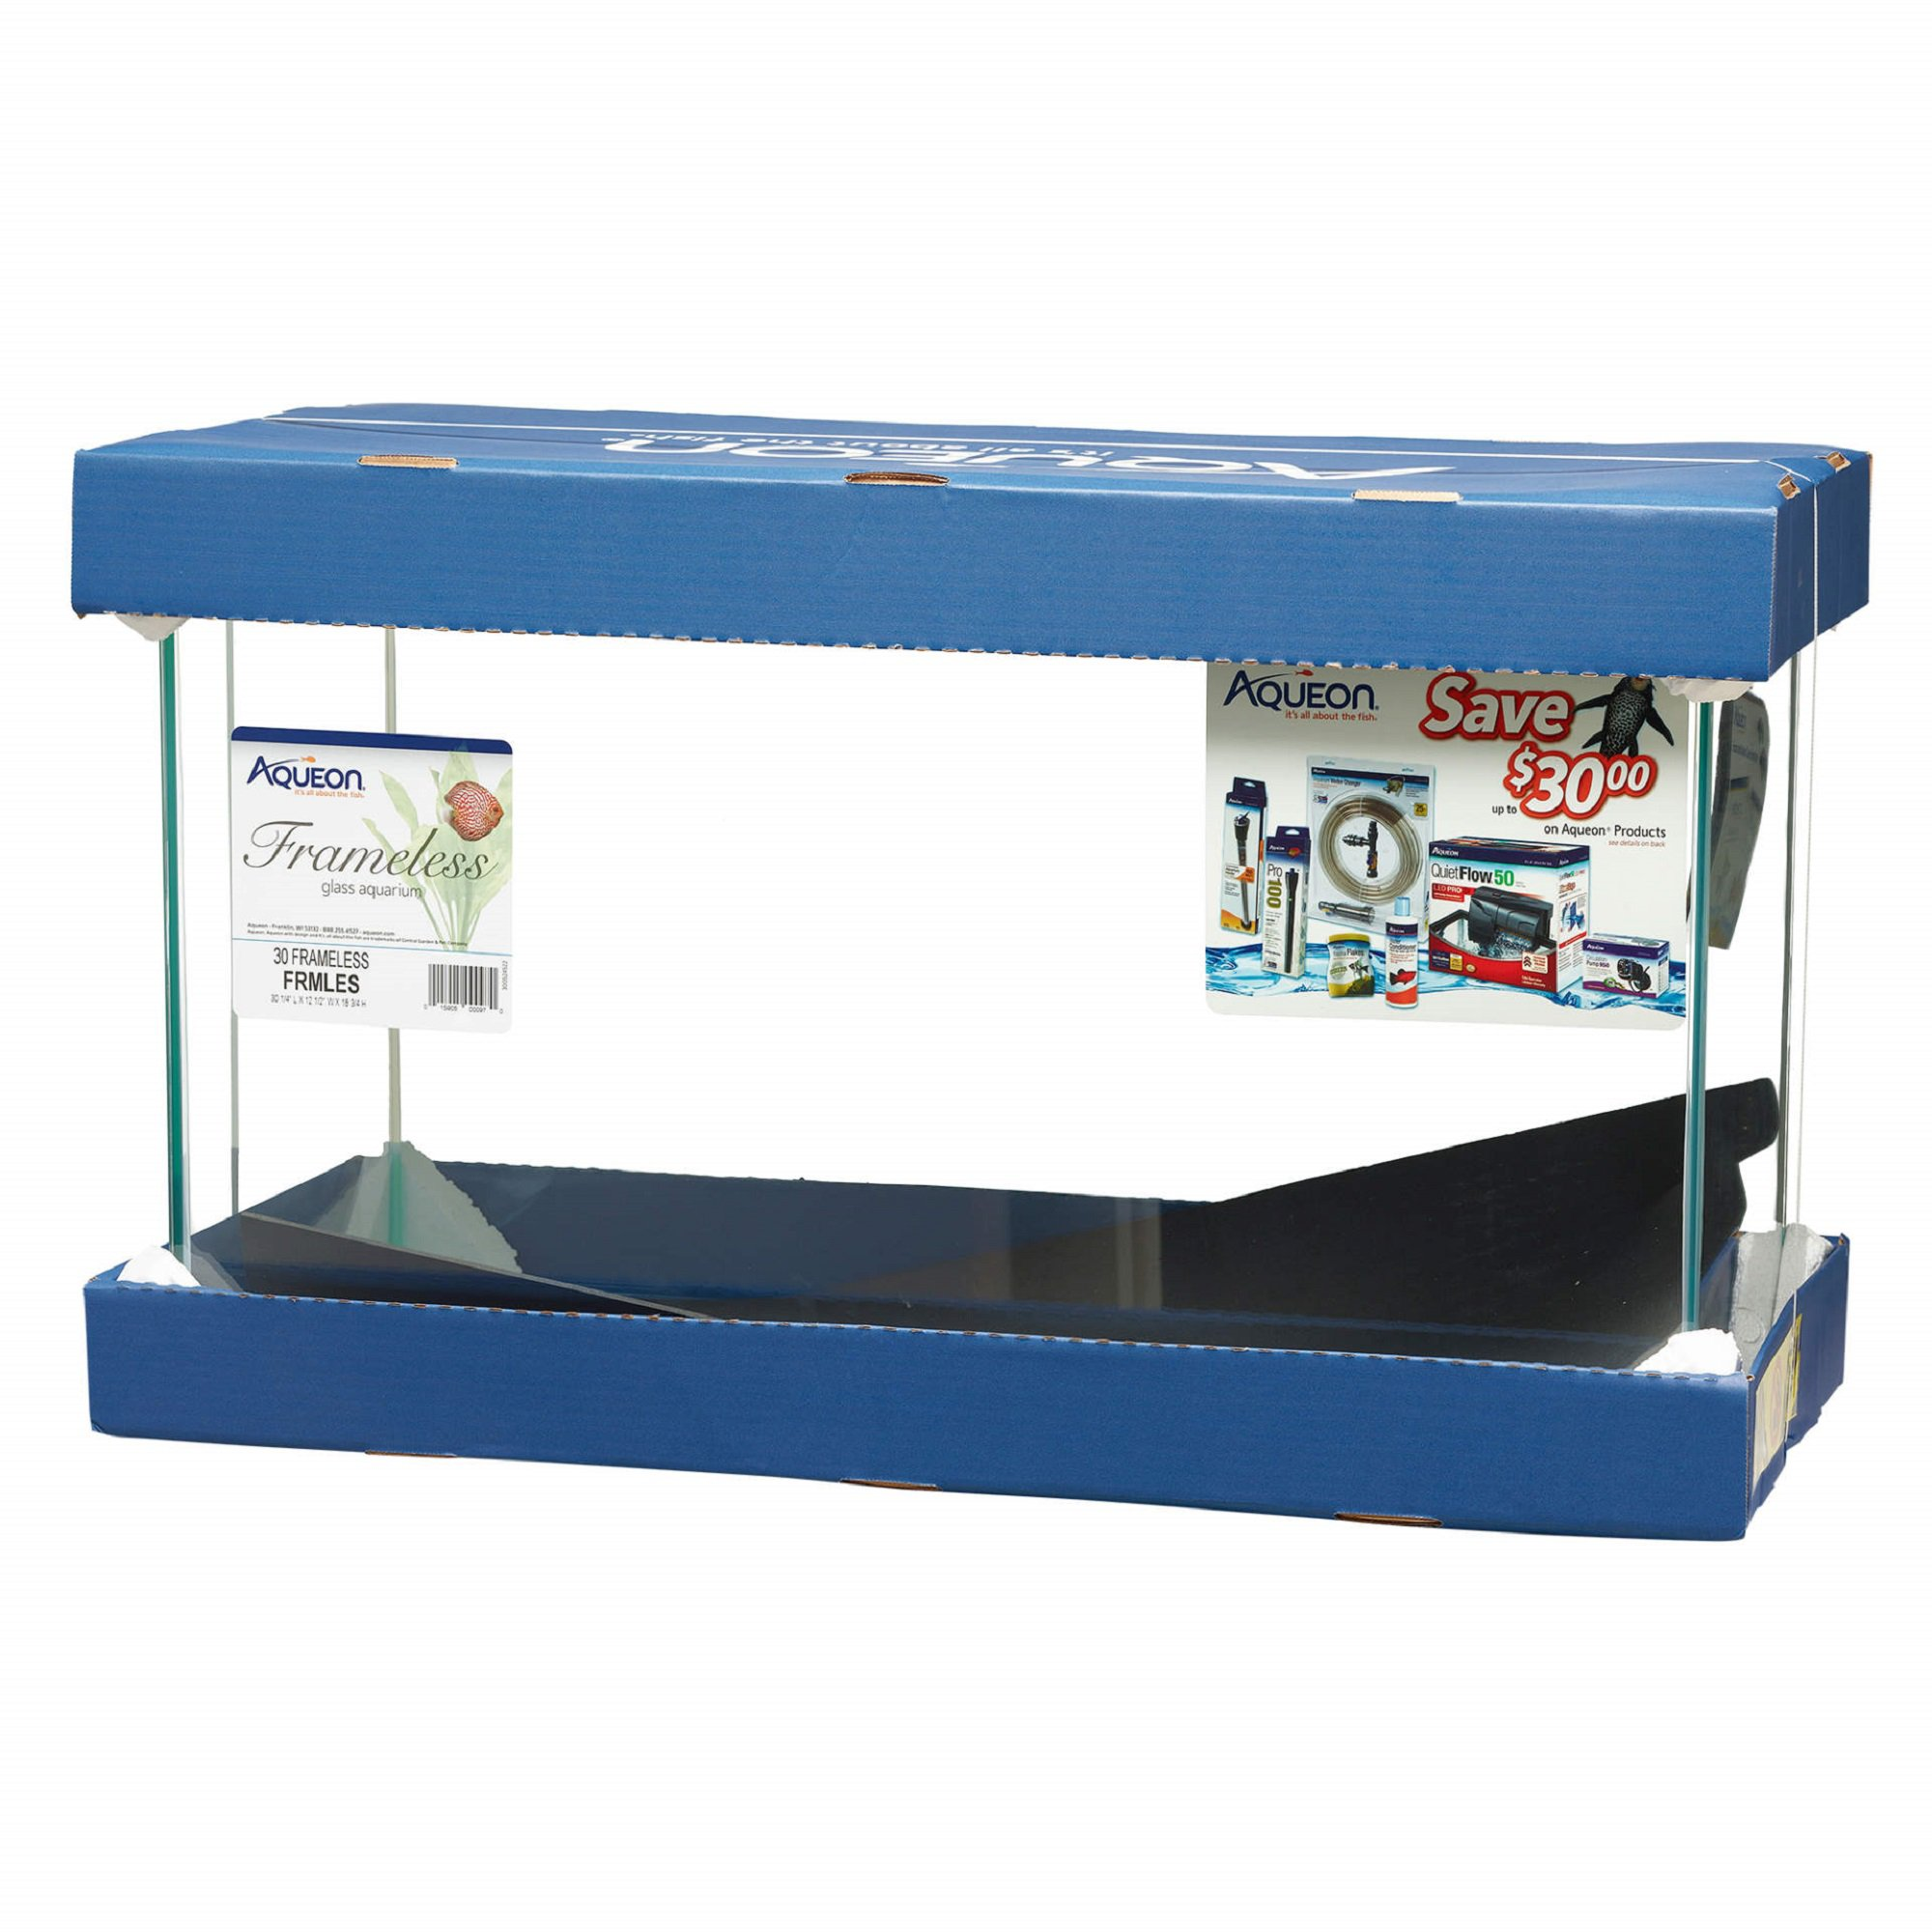 Aqueon 30 Gallon Frameless Aquarium | Petco